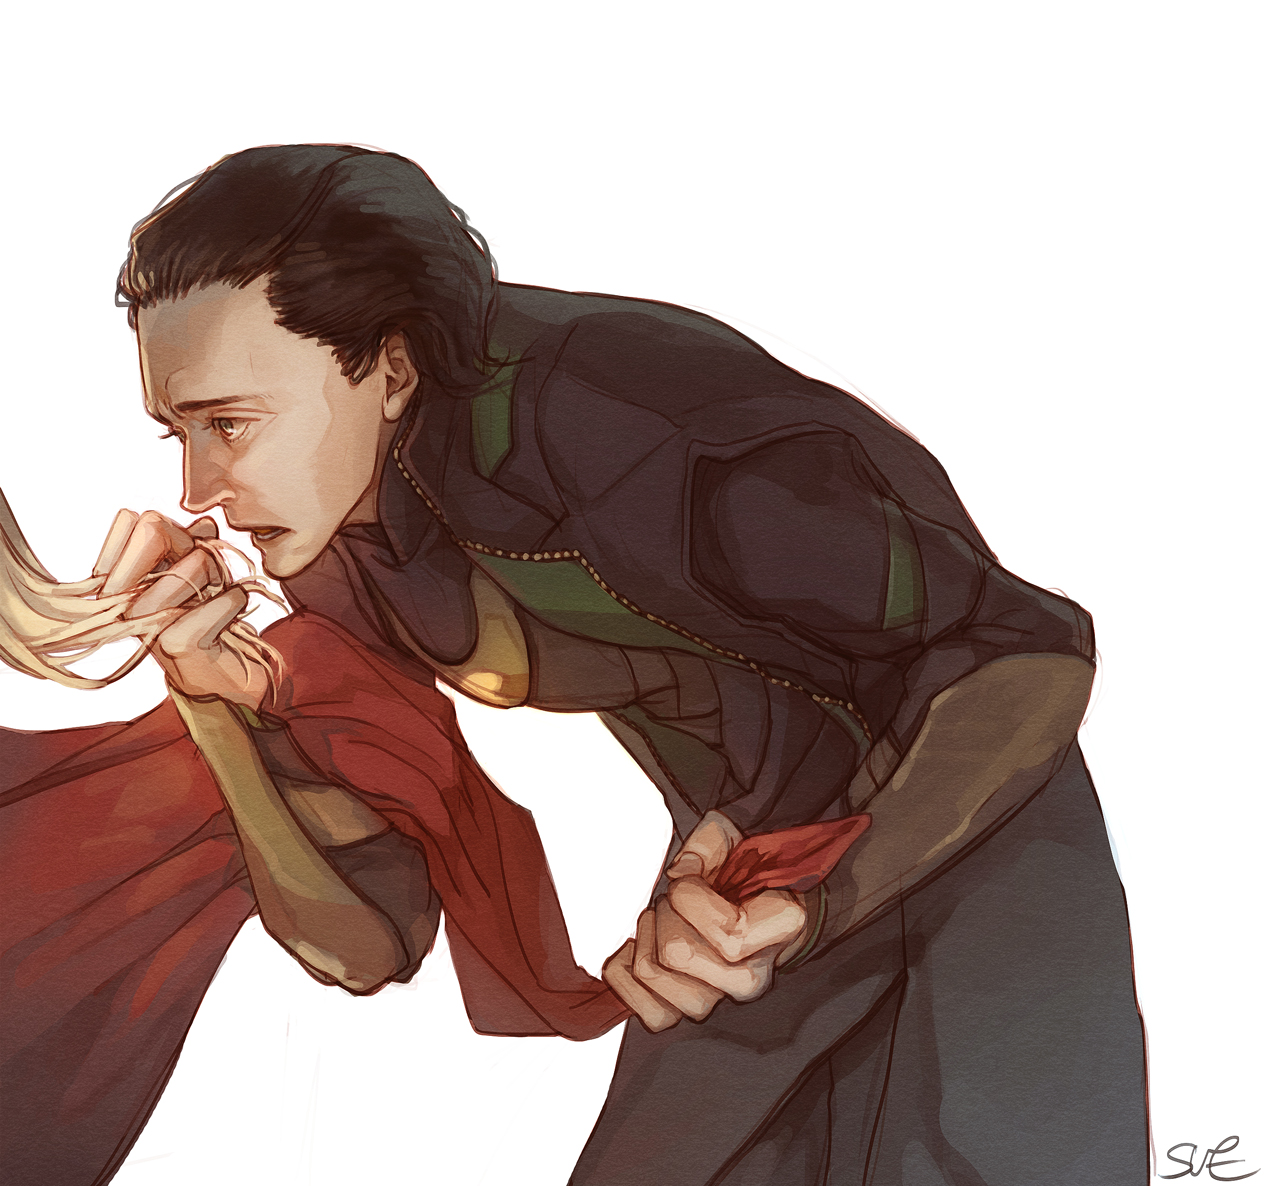 loki short essay kristofer marion Loki short essay kristofer marion complete and submit this assignment by the due date to receive full credit (50 points) 1 choose one of the character sketches you.